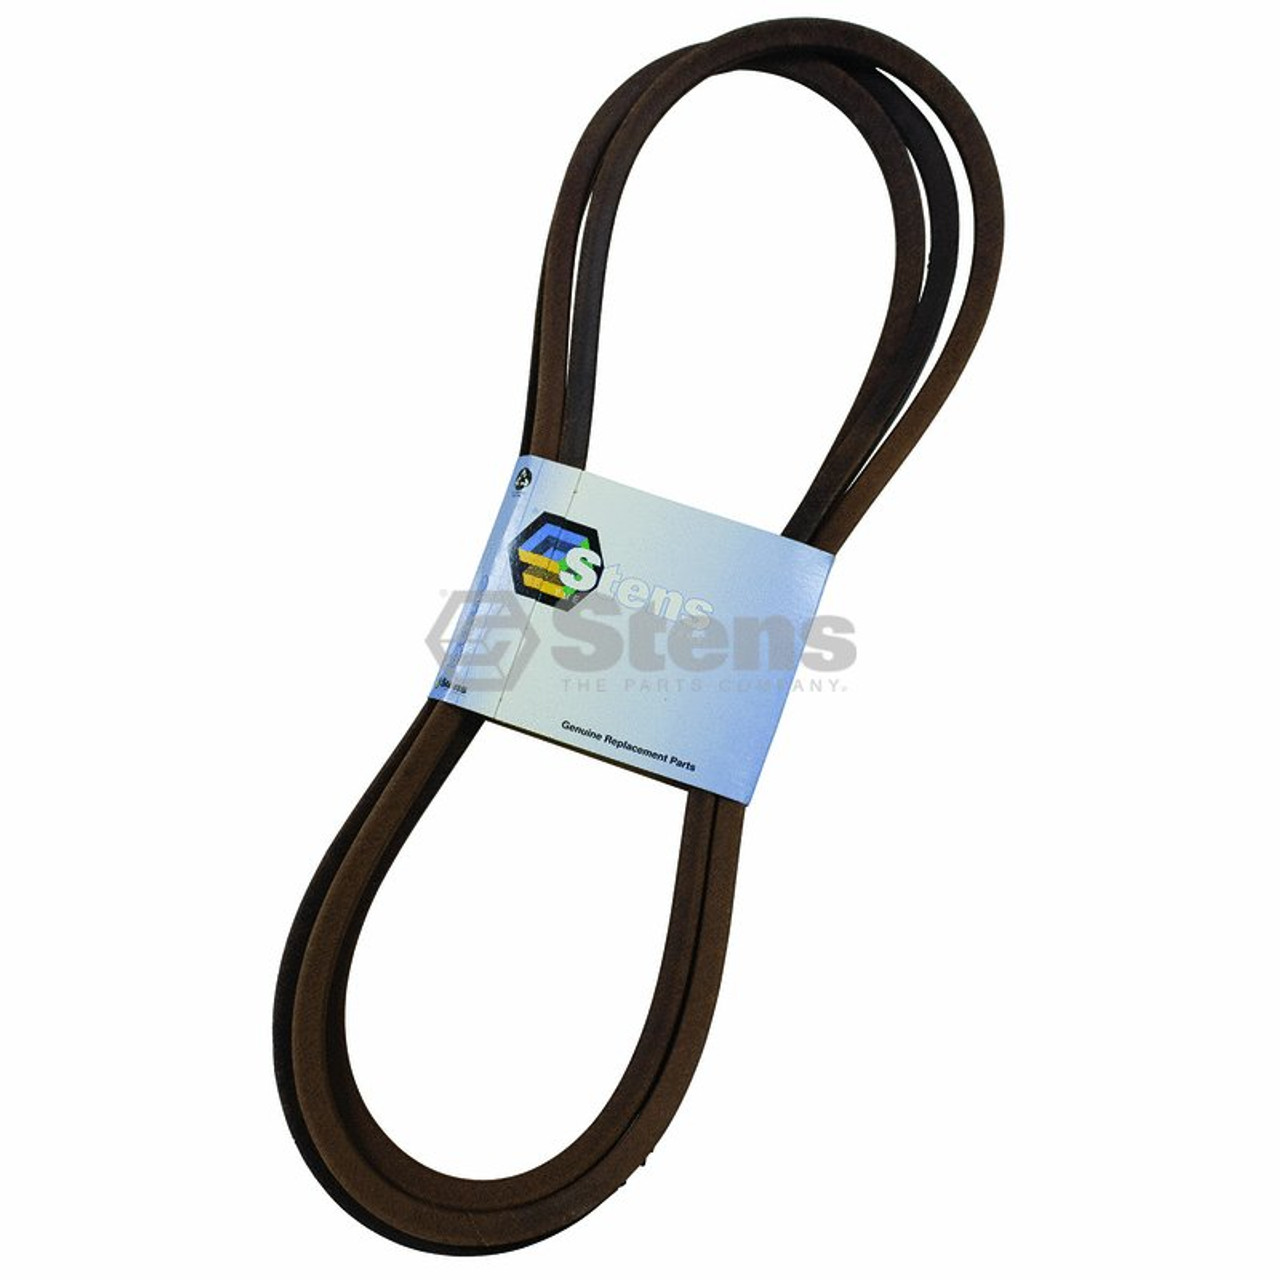 Stens 265-398 - OEM REPLACEMENT BELT SIMPLICITY 5103390YP